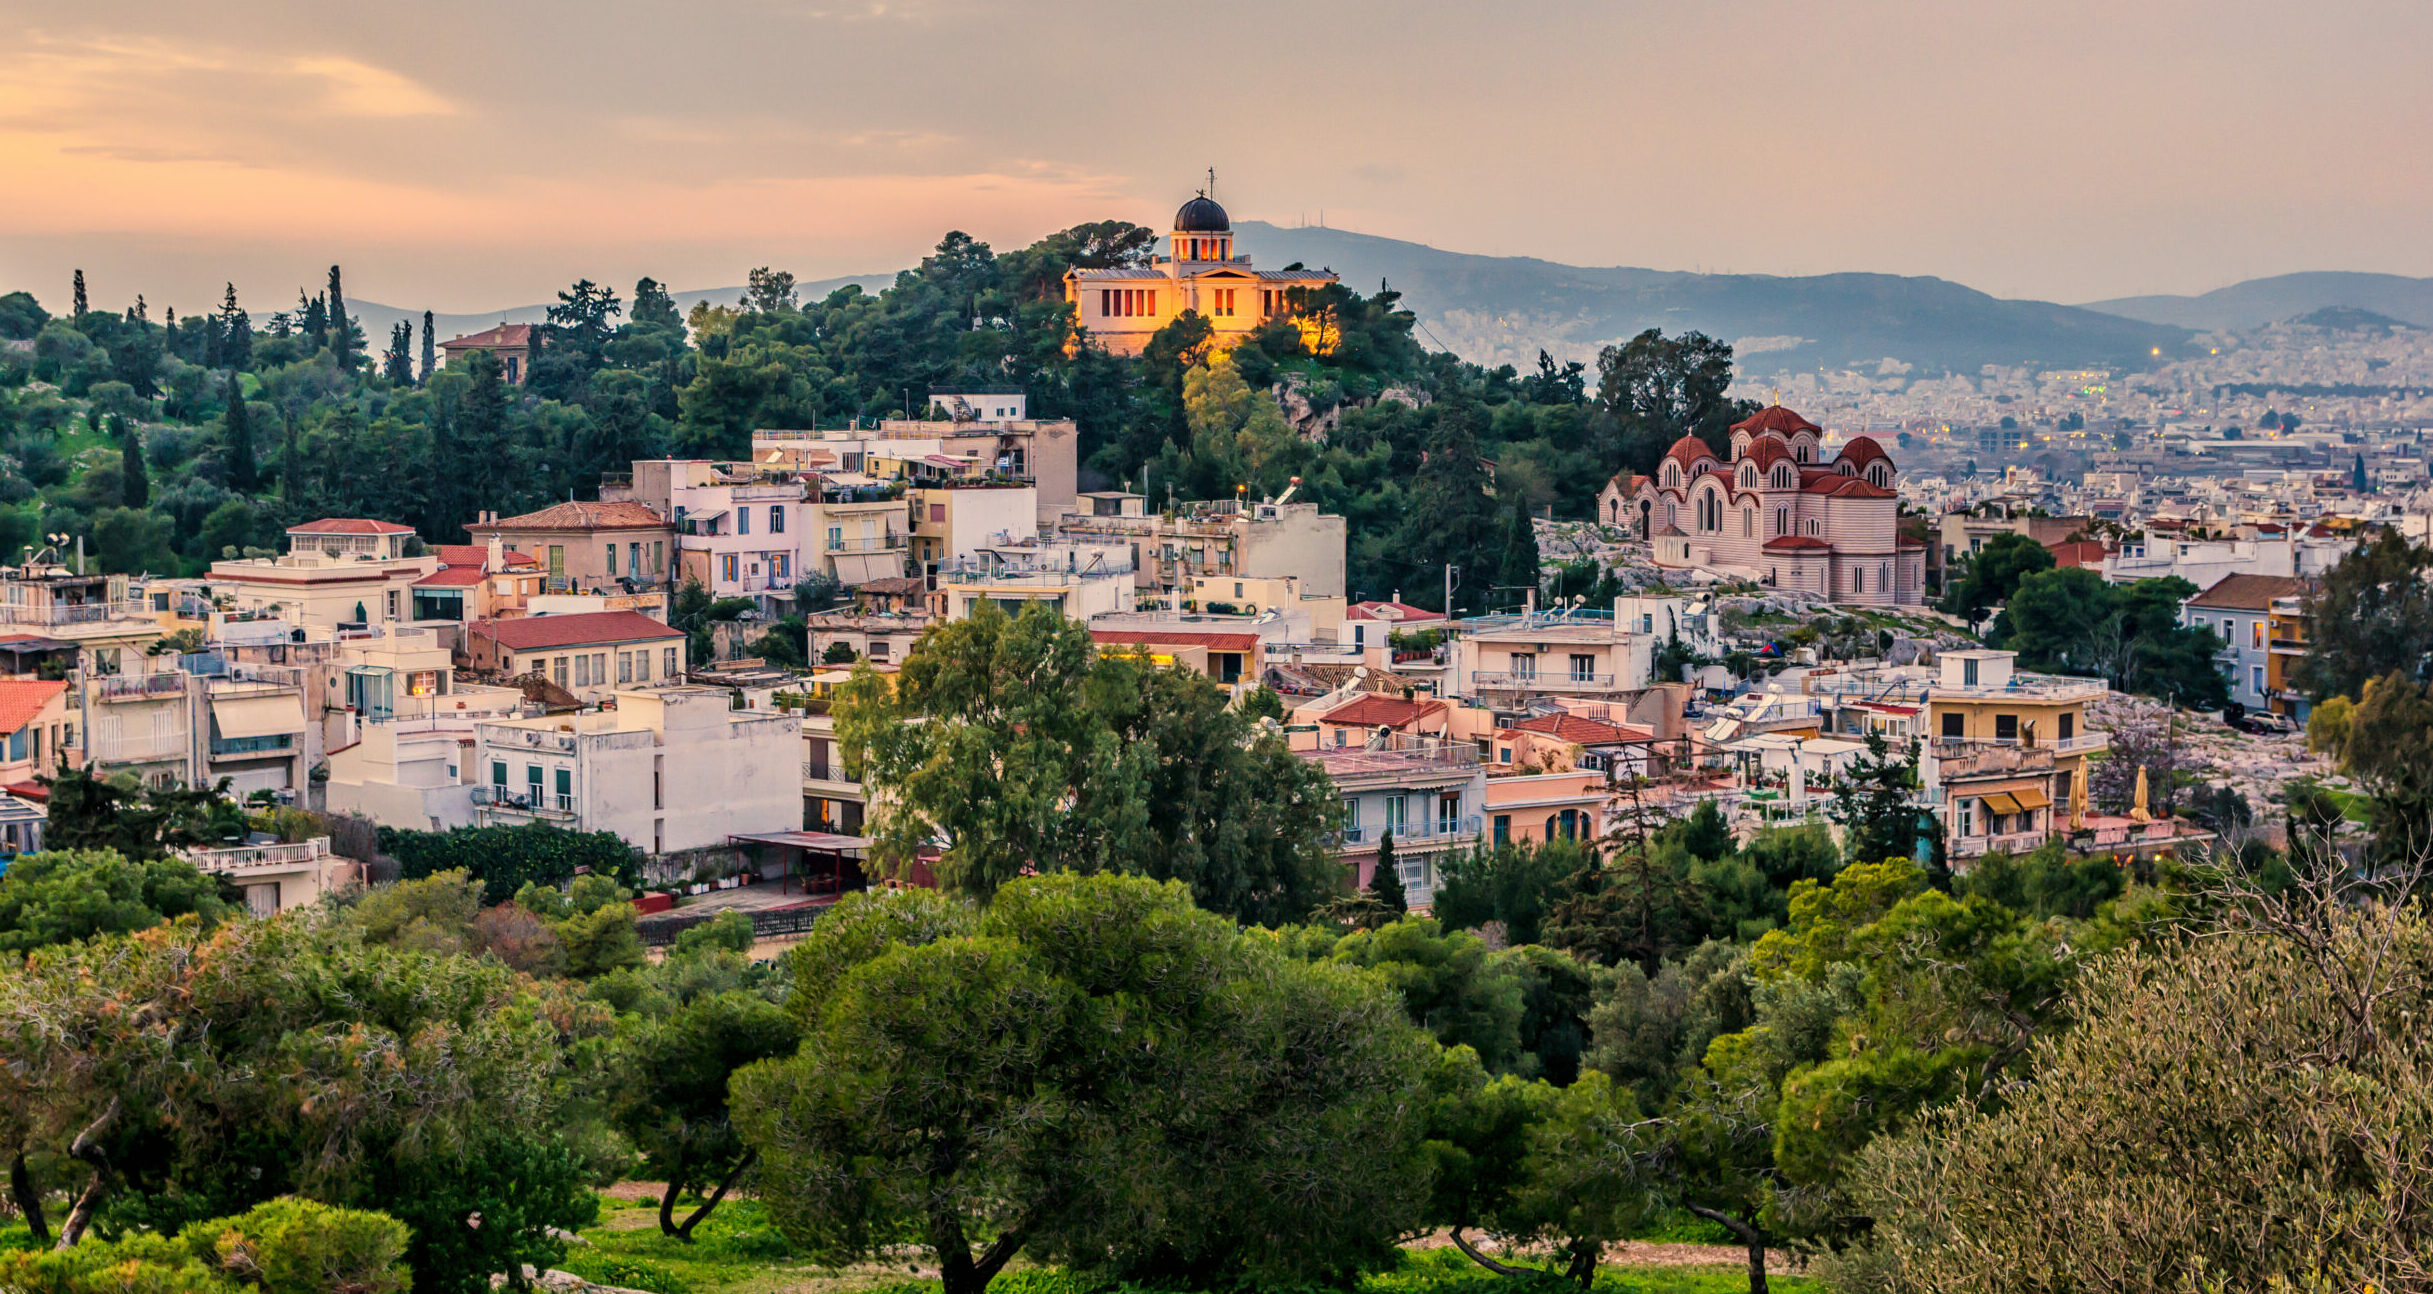 Why Thiseion is the wrong name for this district of Athens